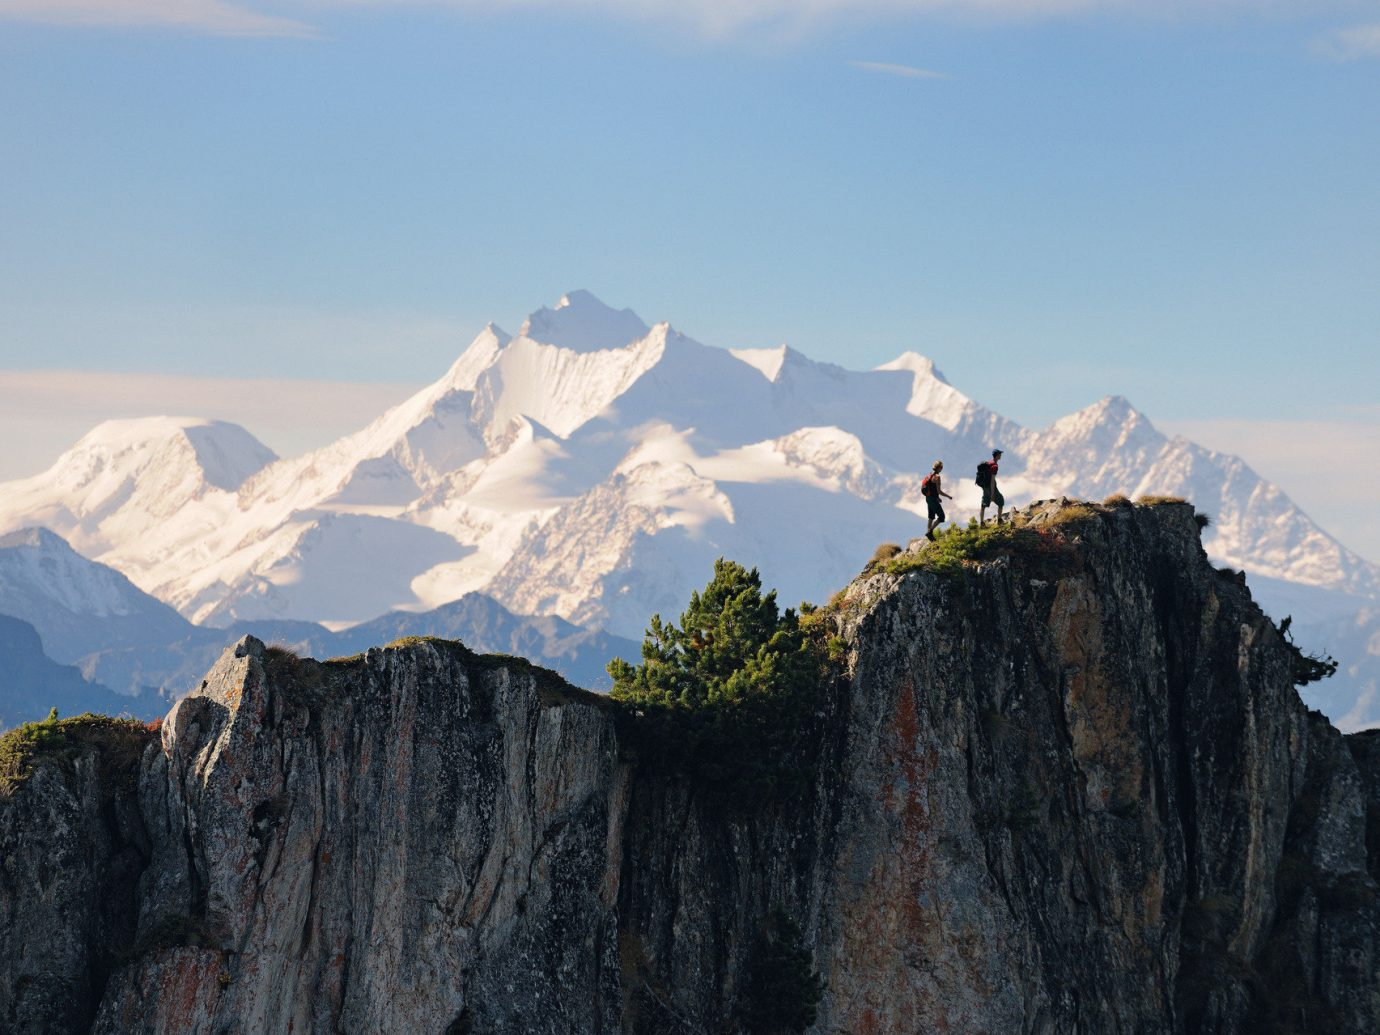 hike Mountains Nature Offbeat Scenic views mountain sky outdoor snow mountainous landforms mountain range landform geographical feature wilderness ridge alps cloud rock Adventure landscape cliff mountaineering terrain summit canyon walking geology national park overlooking distance hillside